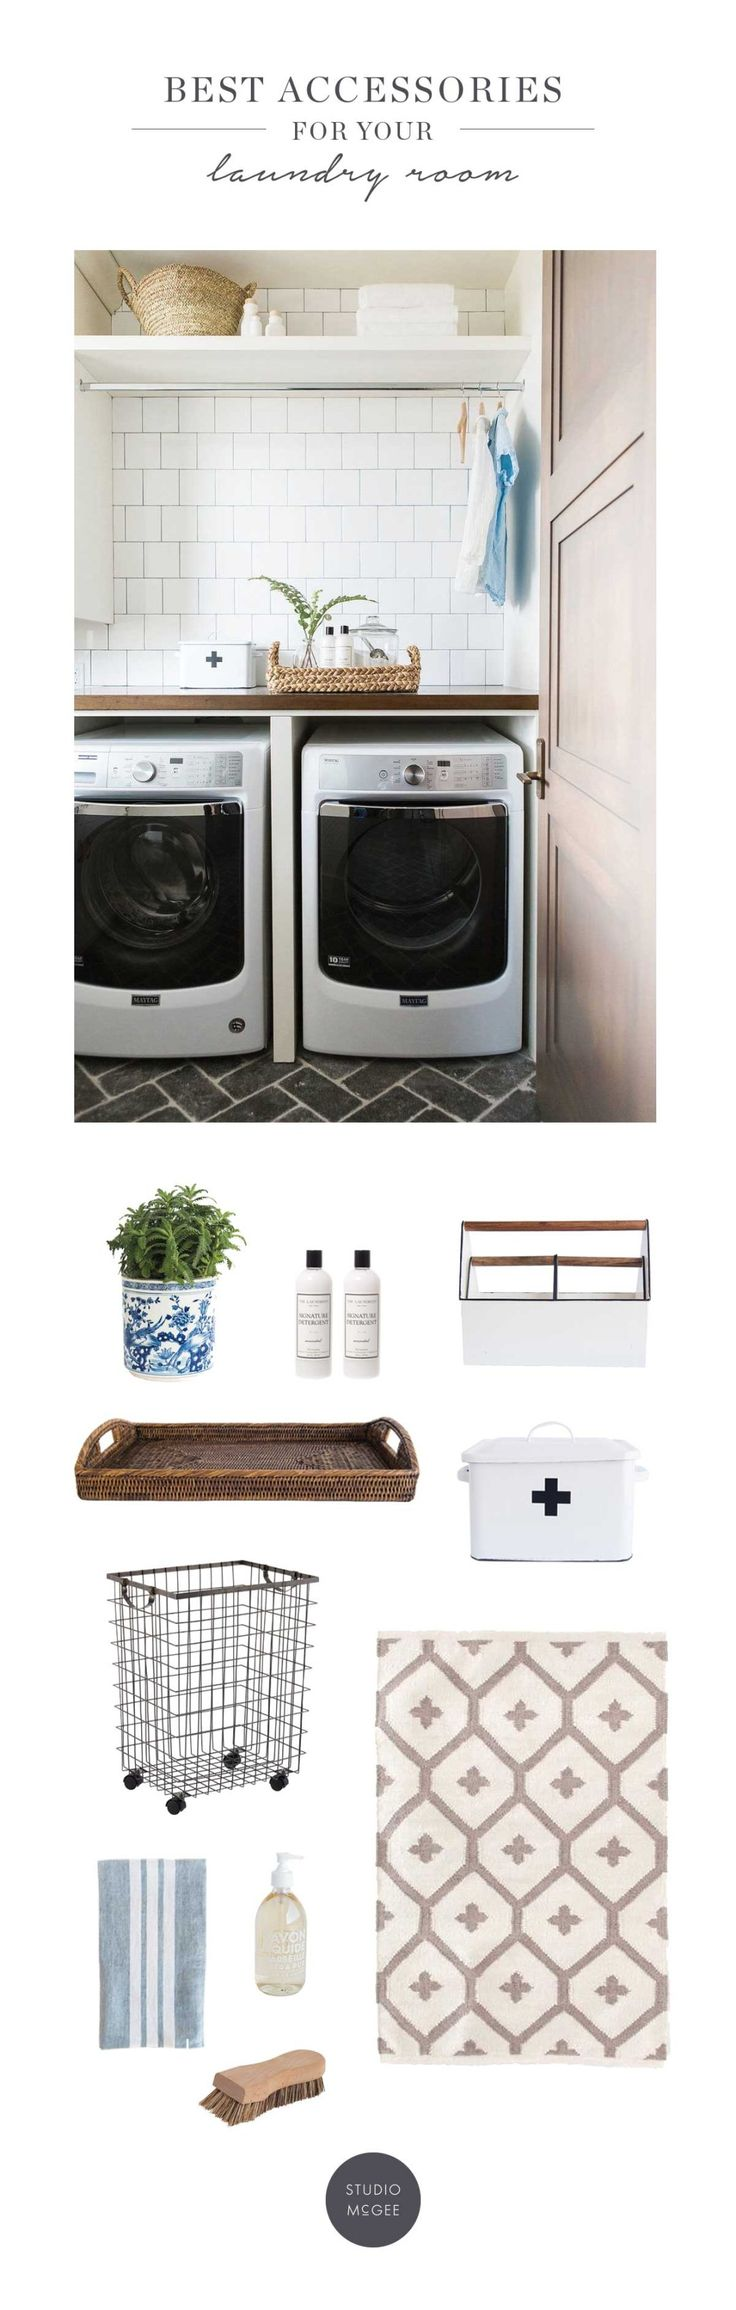 Best accessories for your laundry room | Studio McGee Blog